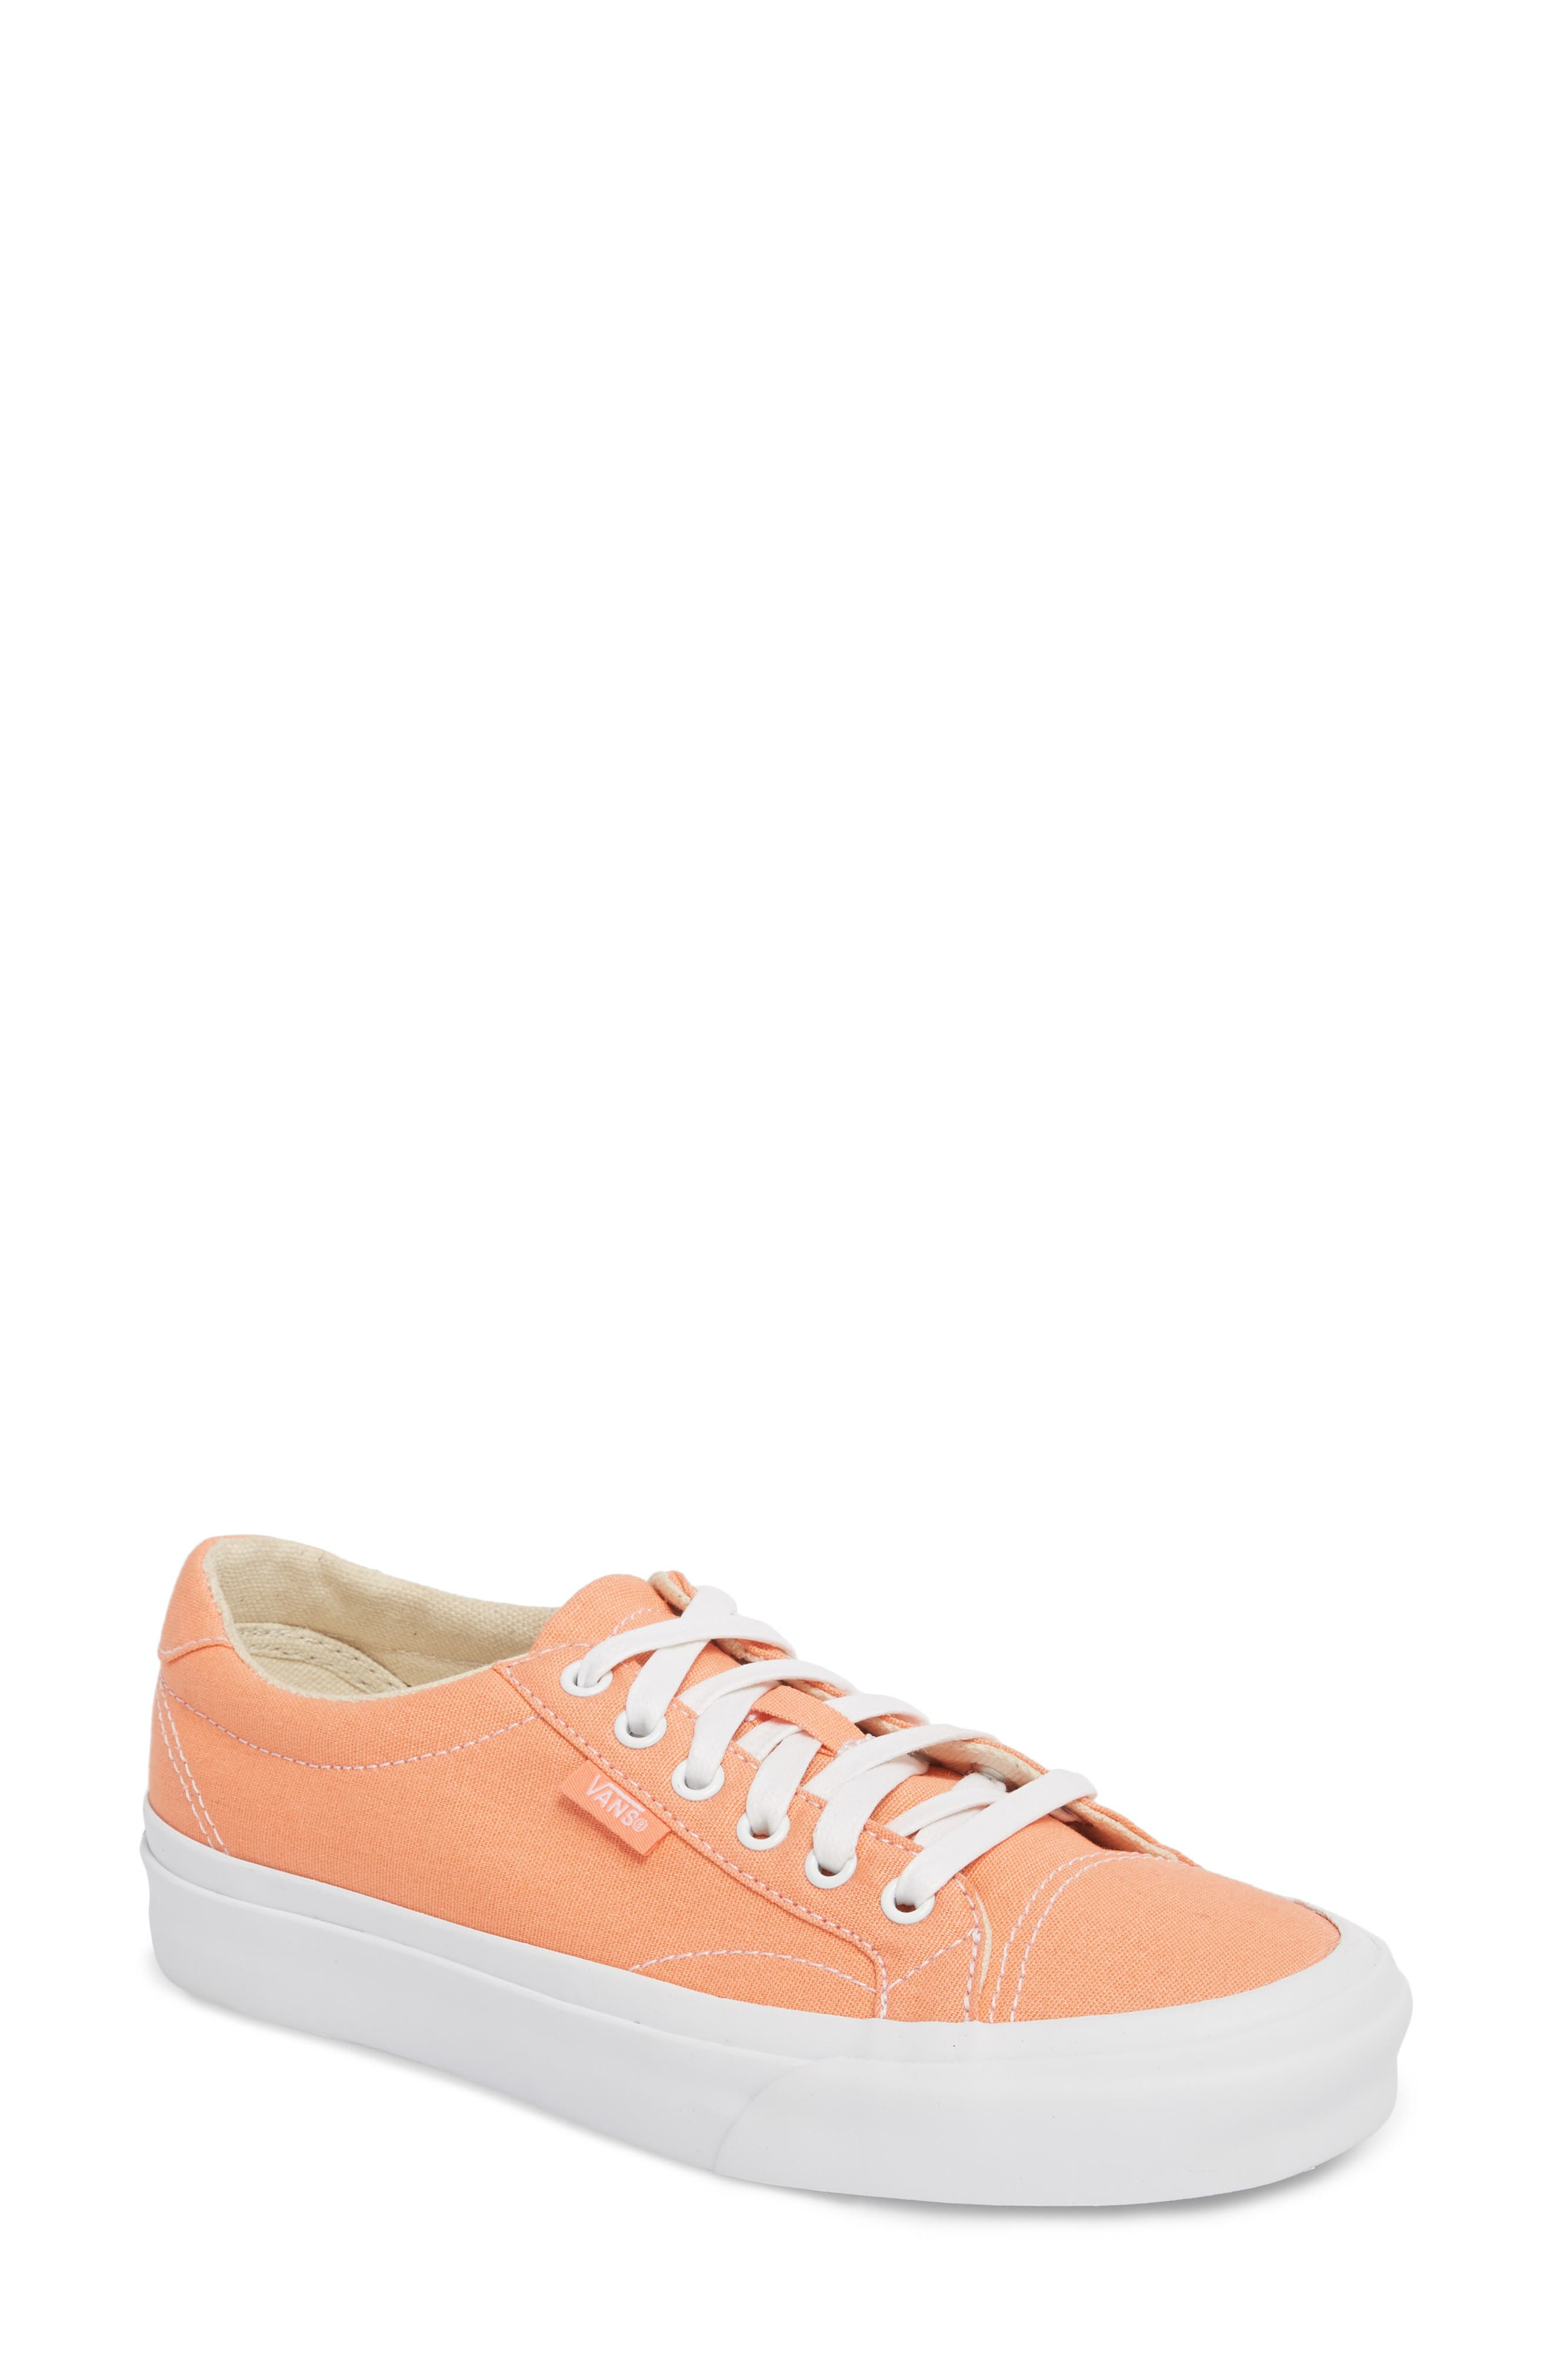 UA Court Low Top Sneaker,                             Main thumbnail 1, color,                             Peach Pink/ True White